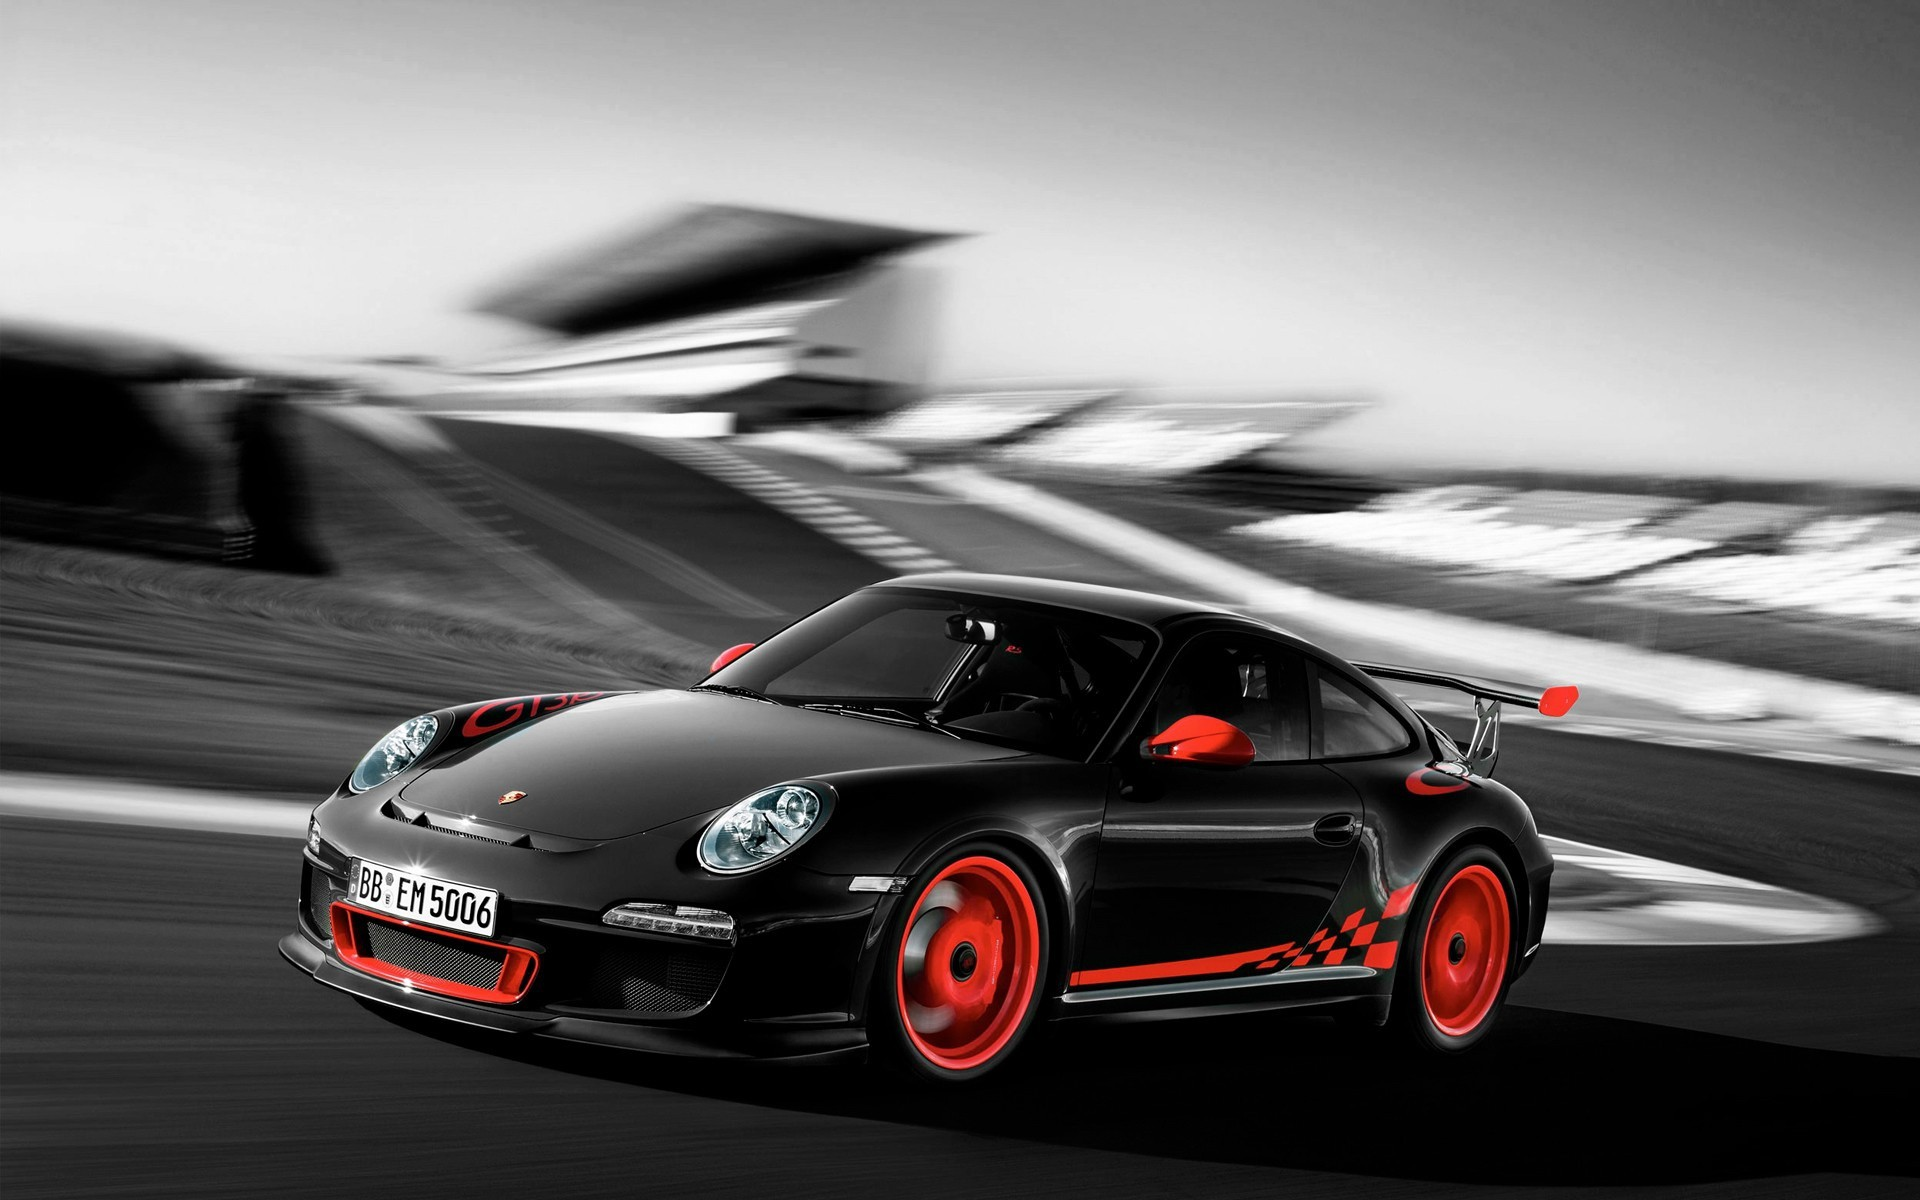 Porsche 911 Gt3 Wallpaper - Black Porsche 991 Gt3rs - HD Wallpaper